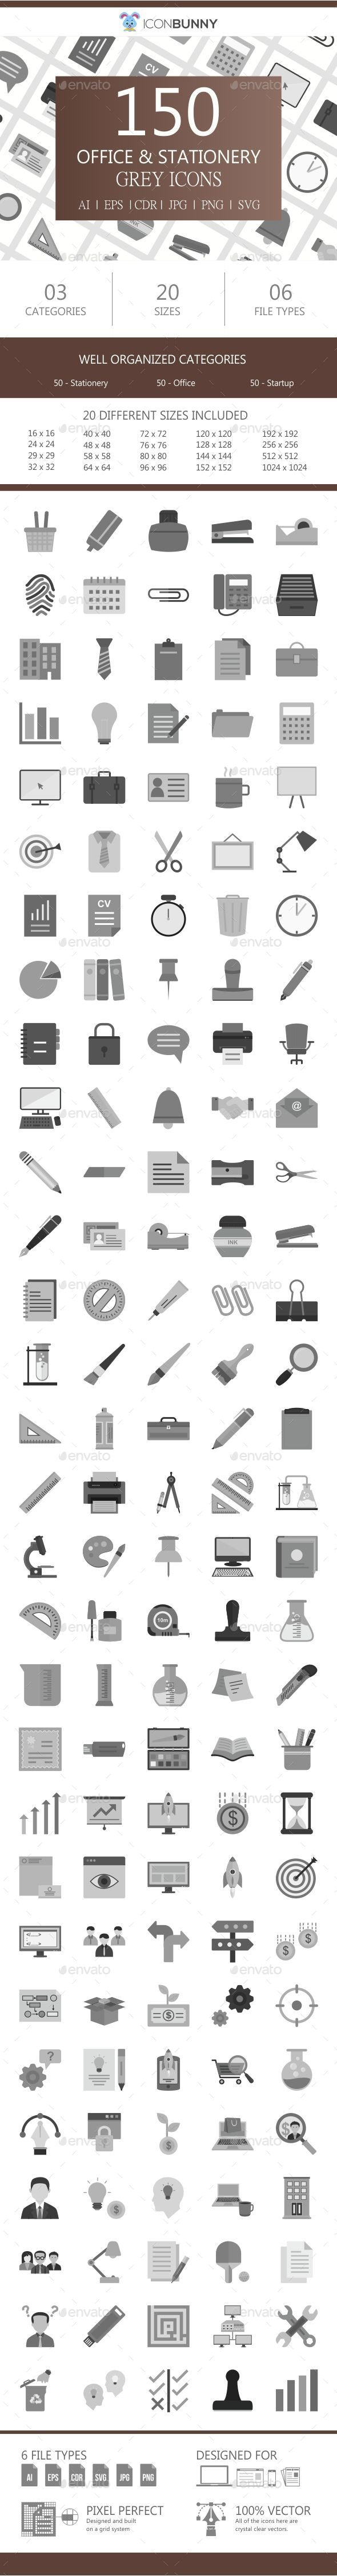 150 Office & Stationery Flat Greyscale Icons - Icons